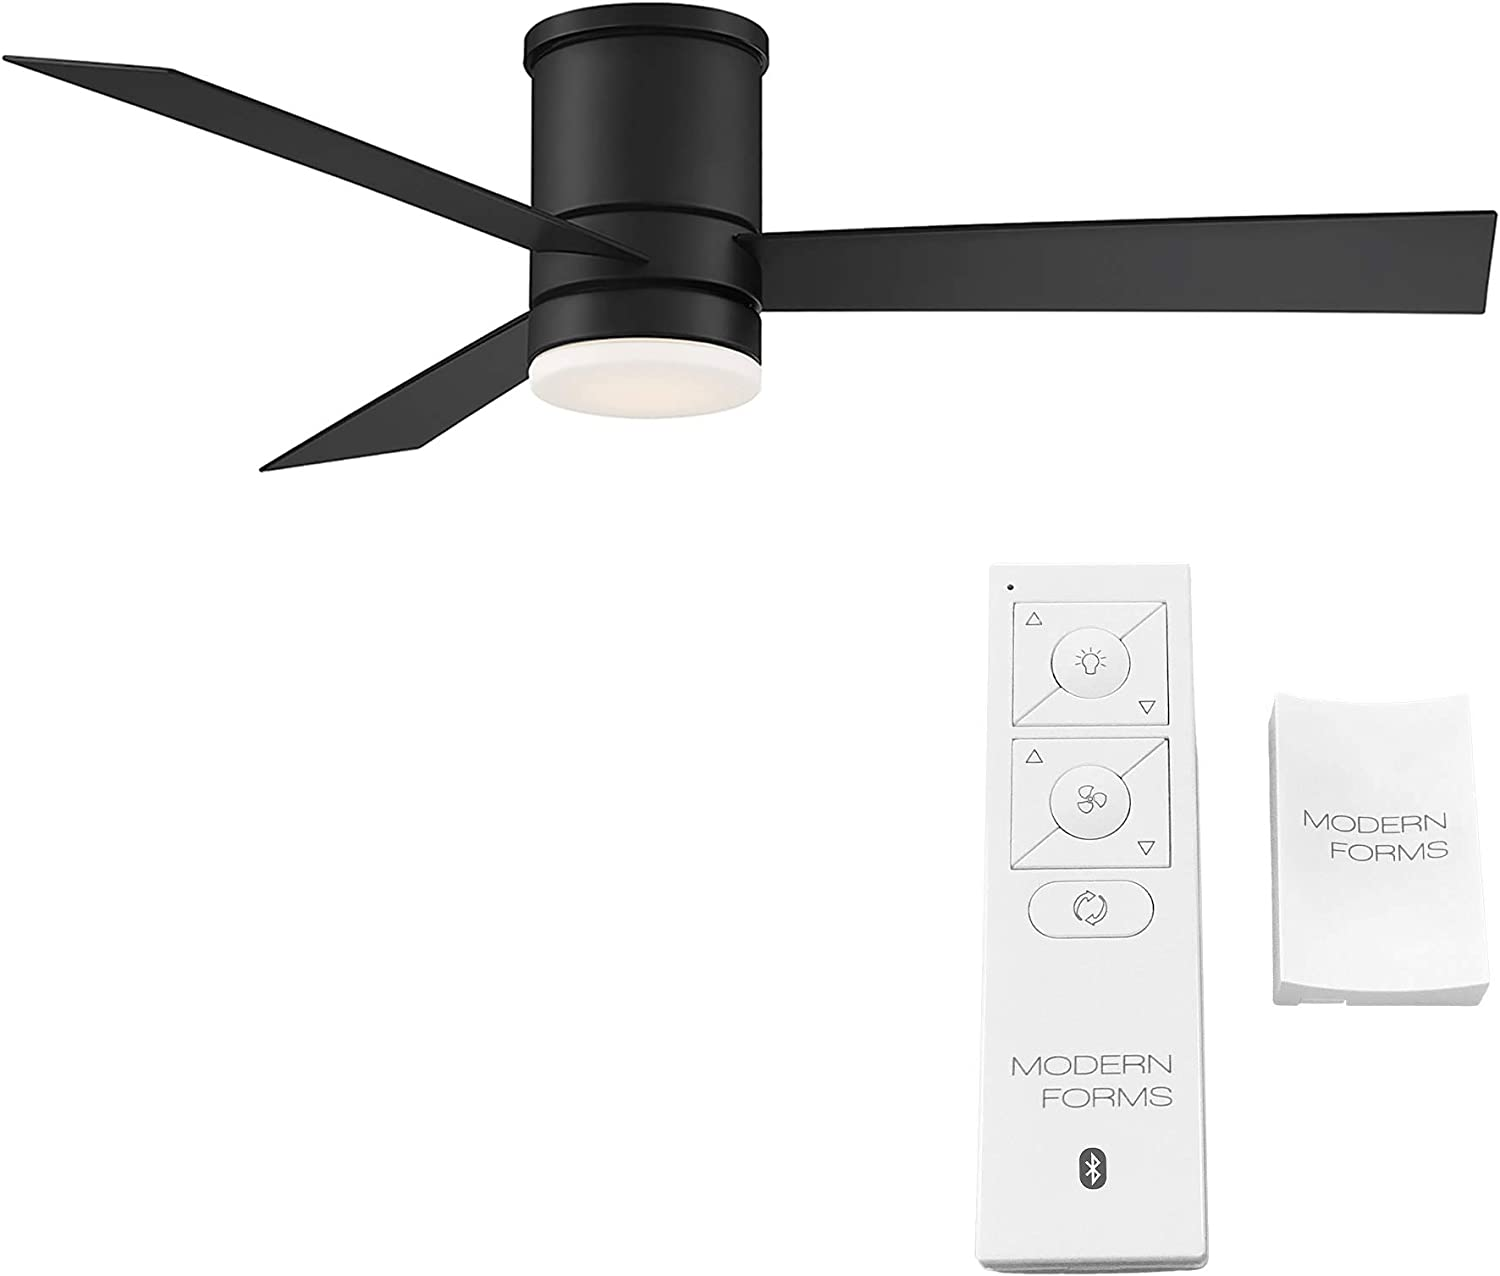 Modern Forms FH-W1803-52L-35-MB Axis Flushmount Smart Home Ceiling Fans, 52in Blade Span, Matte Black